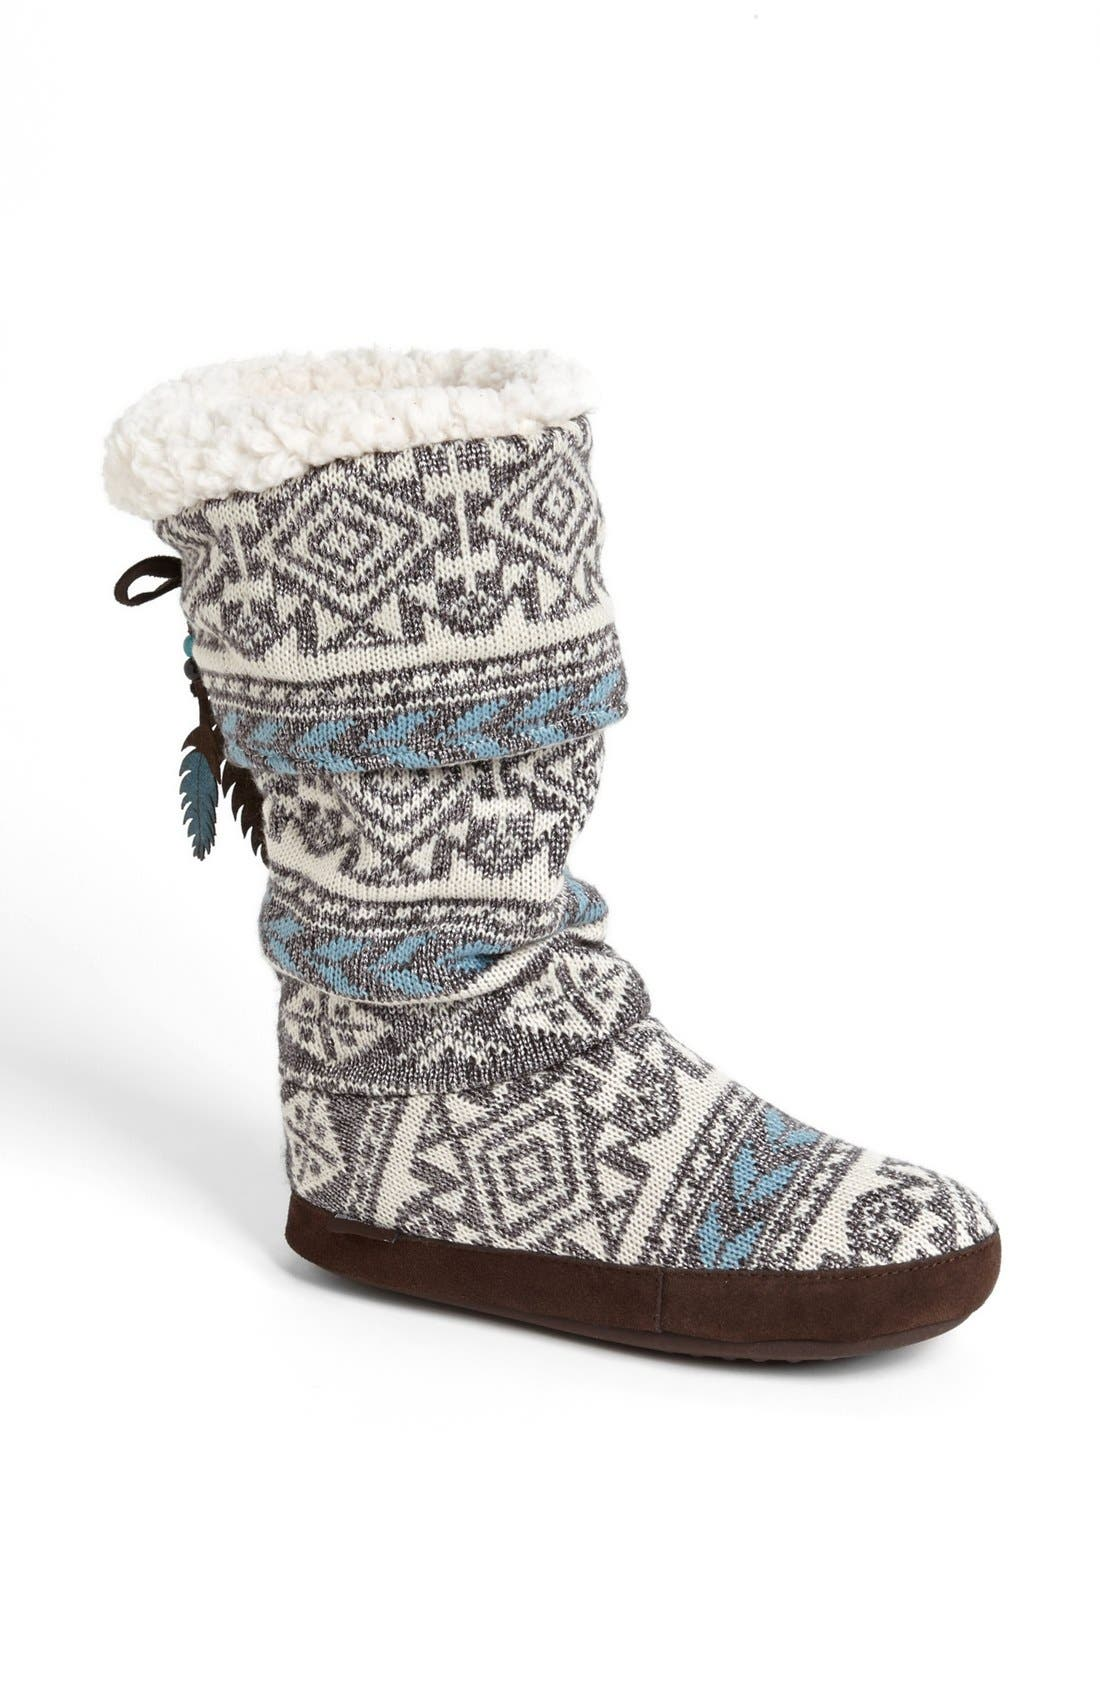 Alternate Image 1 Selected - MUK LUKS 'Winona' Tall Slipper